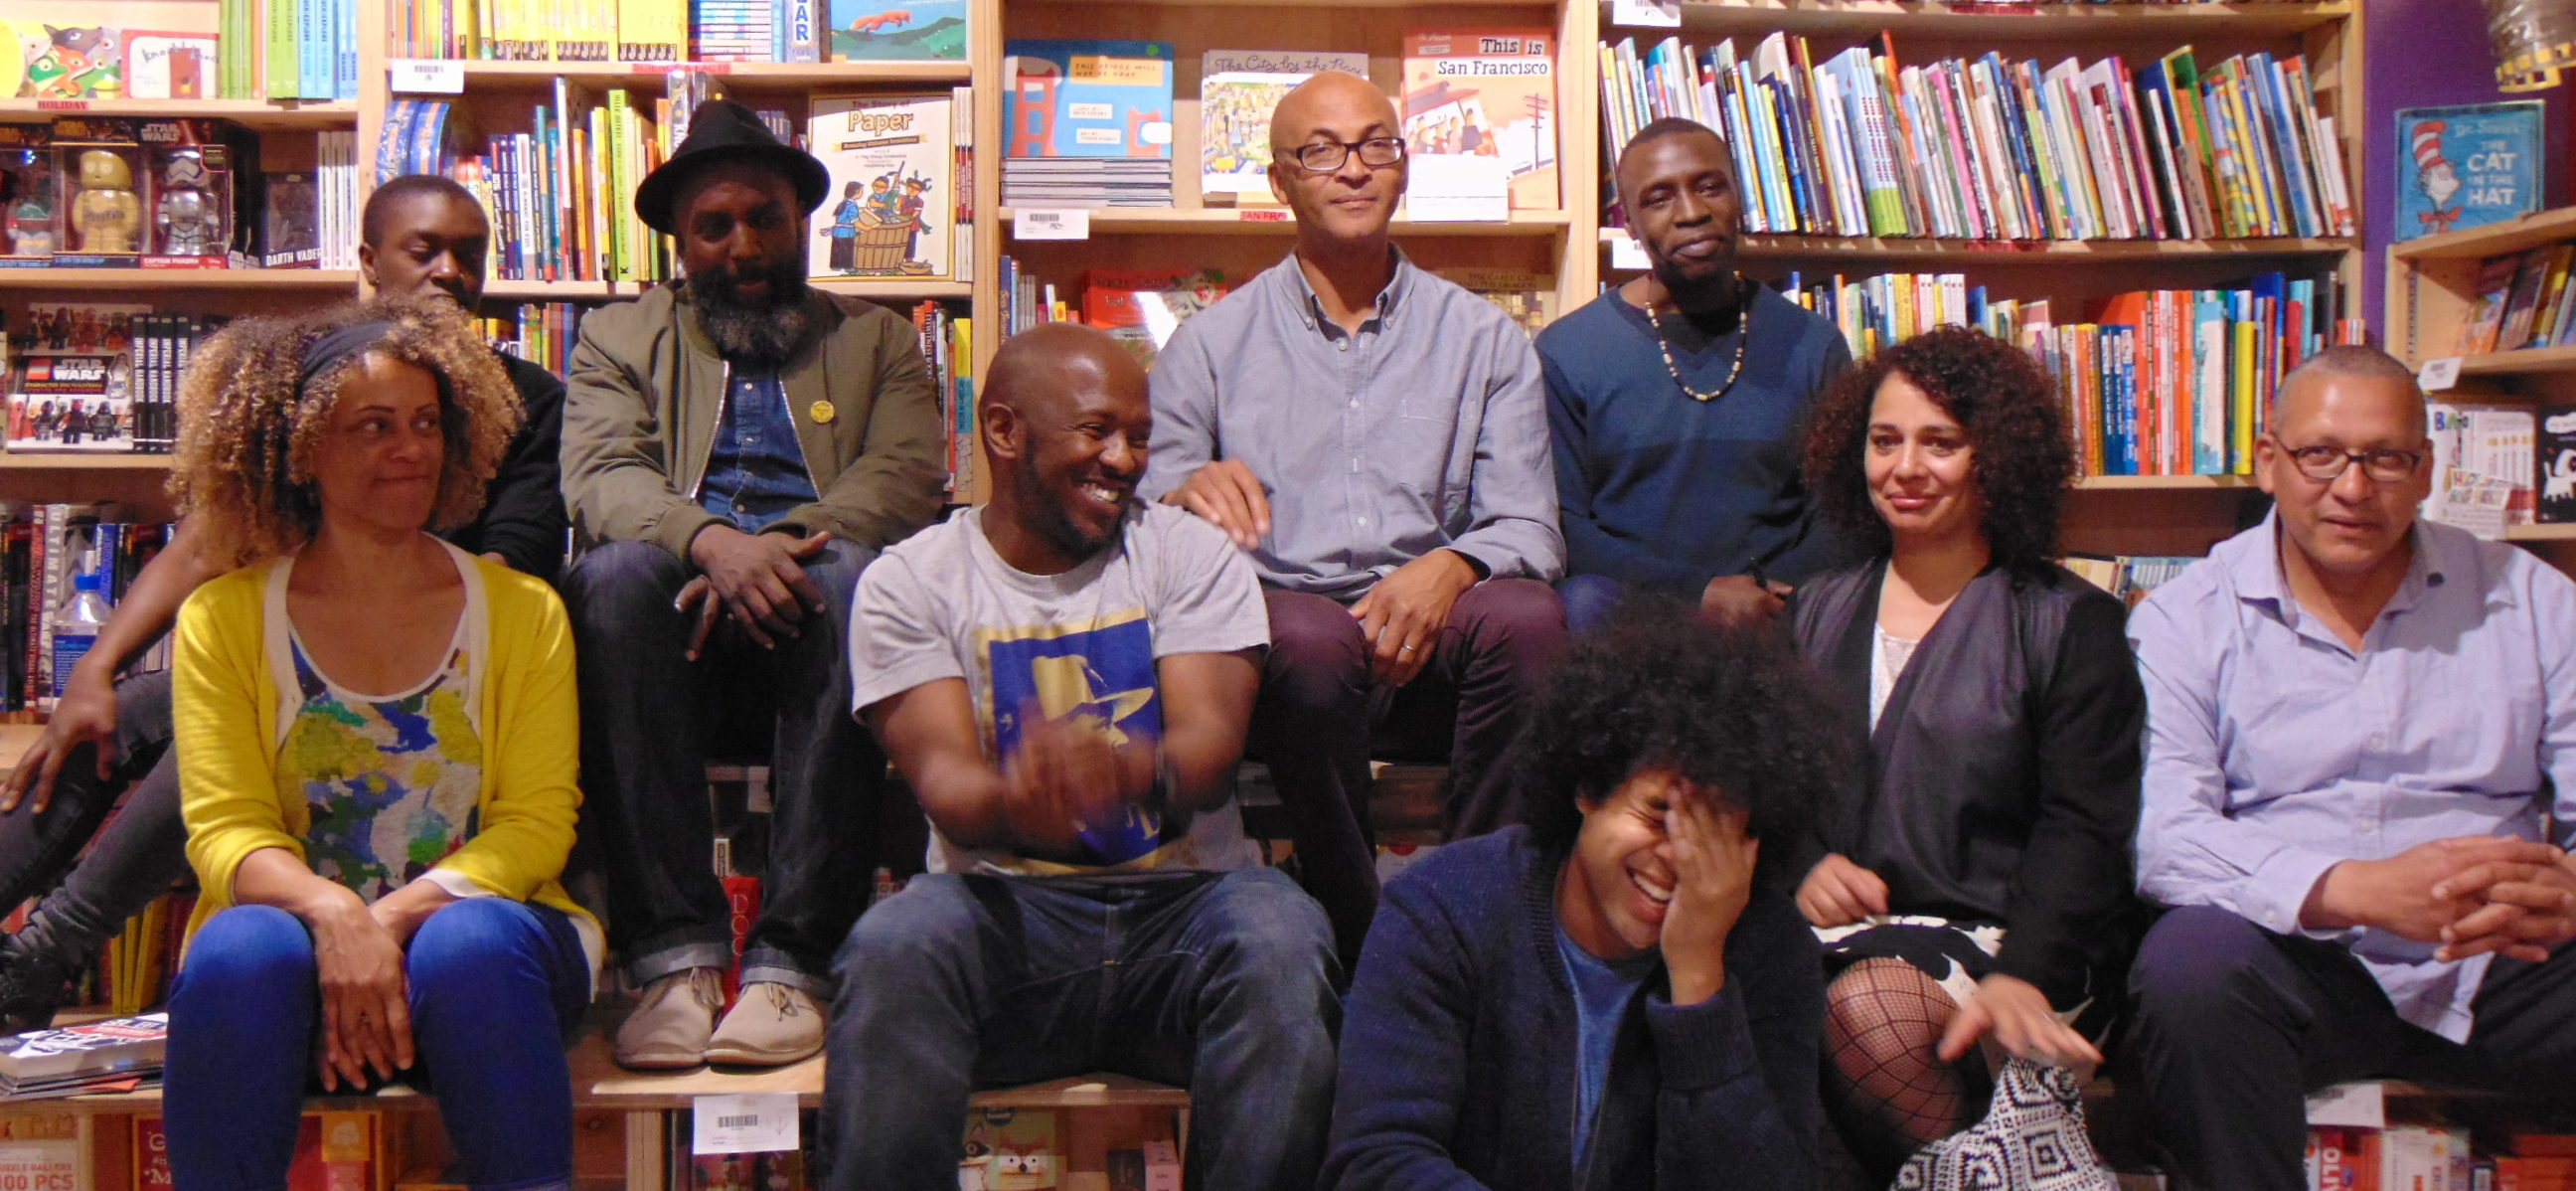 Arts Council funding for international showcases of British BAME writers